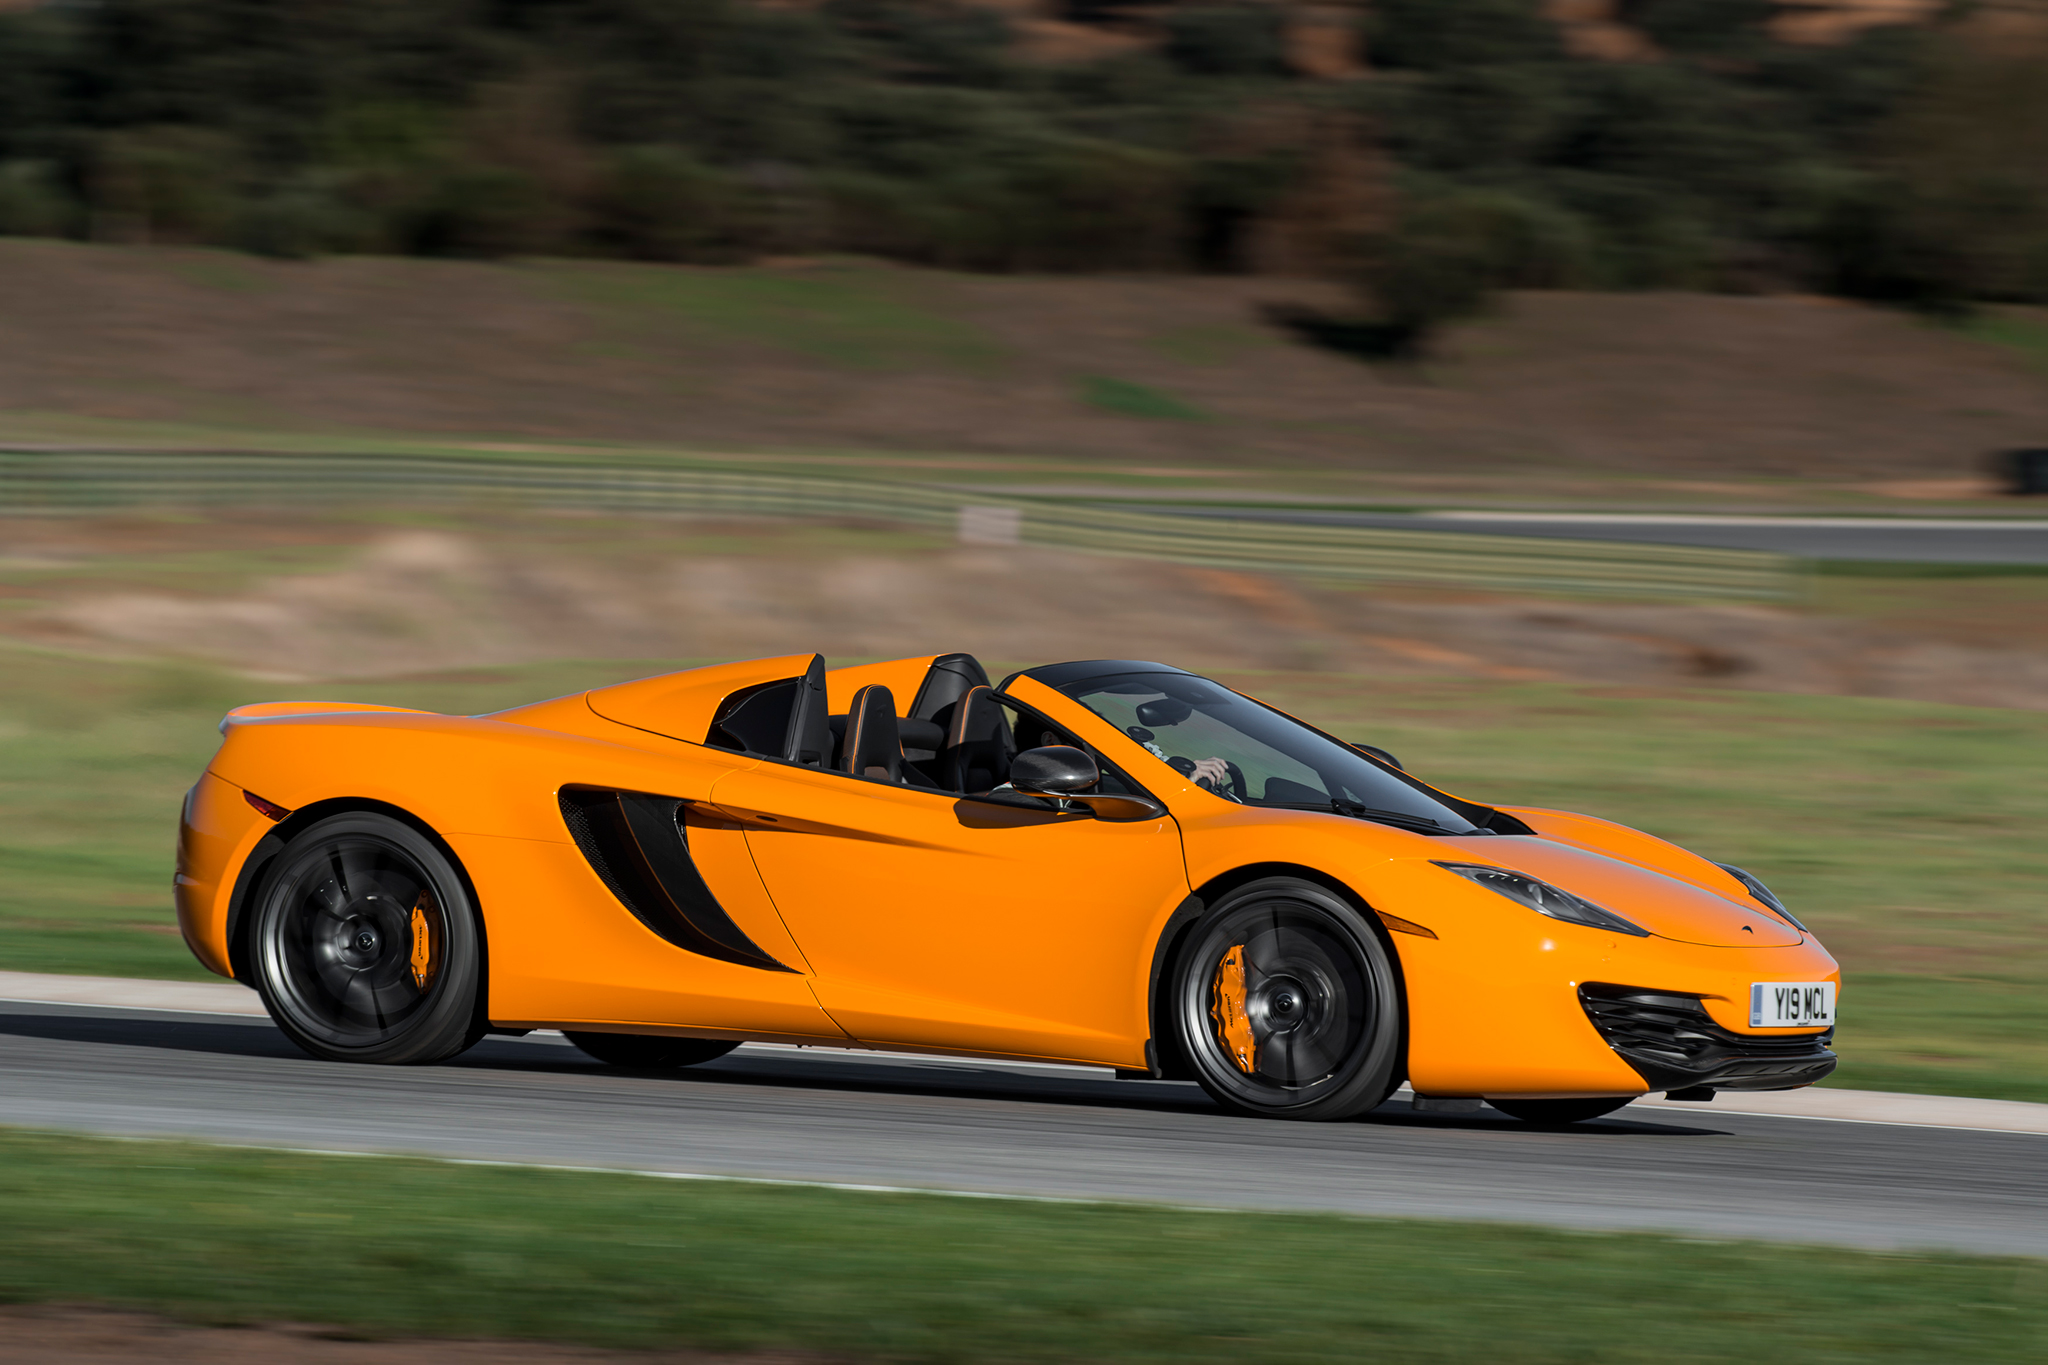 2013 McLaren 12C Spider: Circuit Surgeon